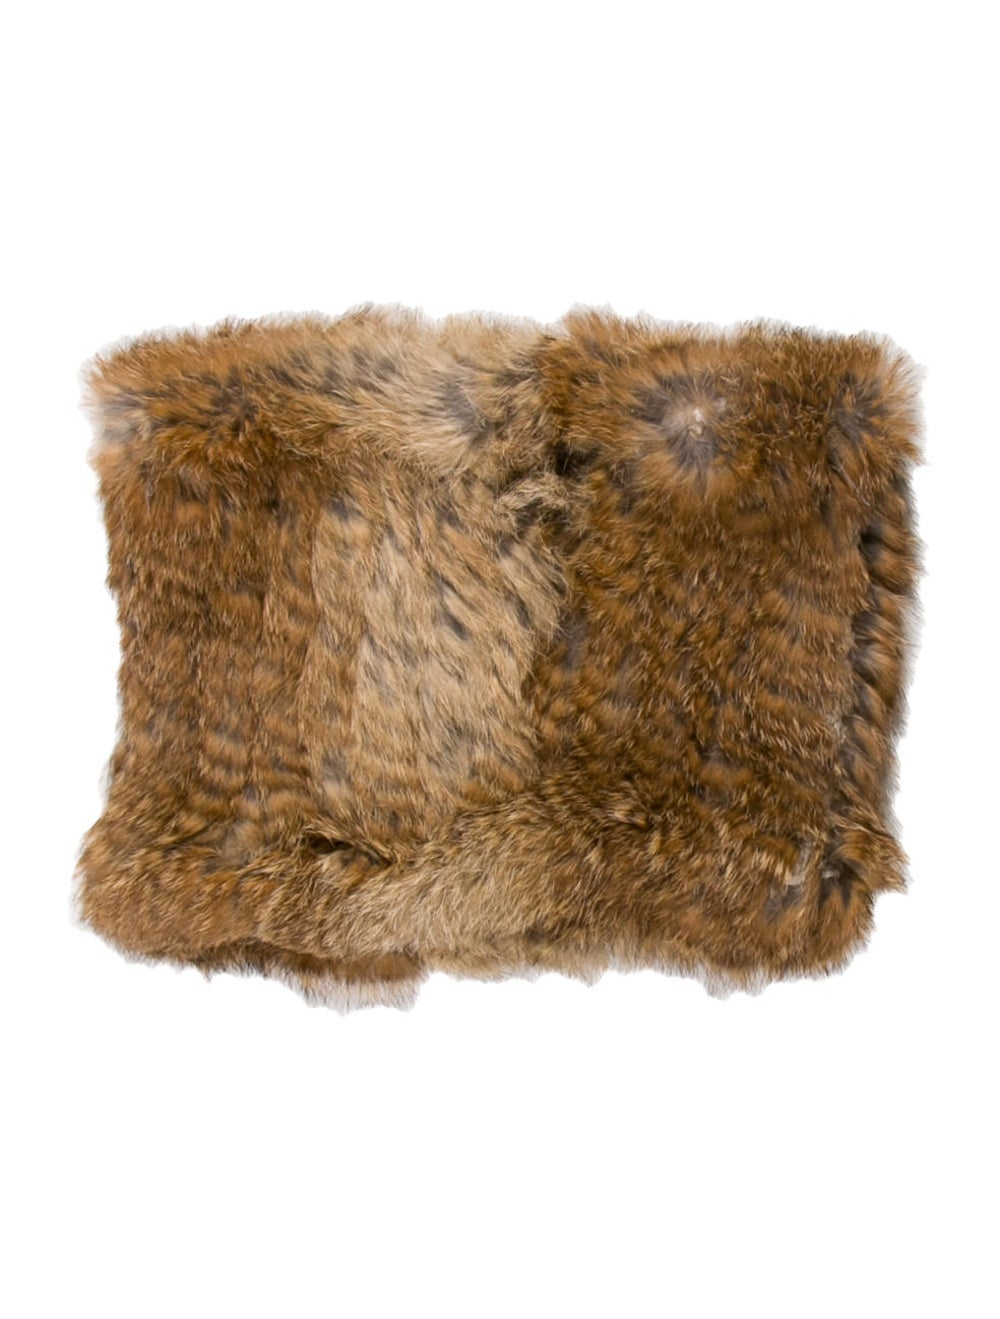 Theory Fur-Trimmed Snood - image 2